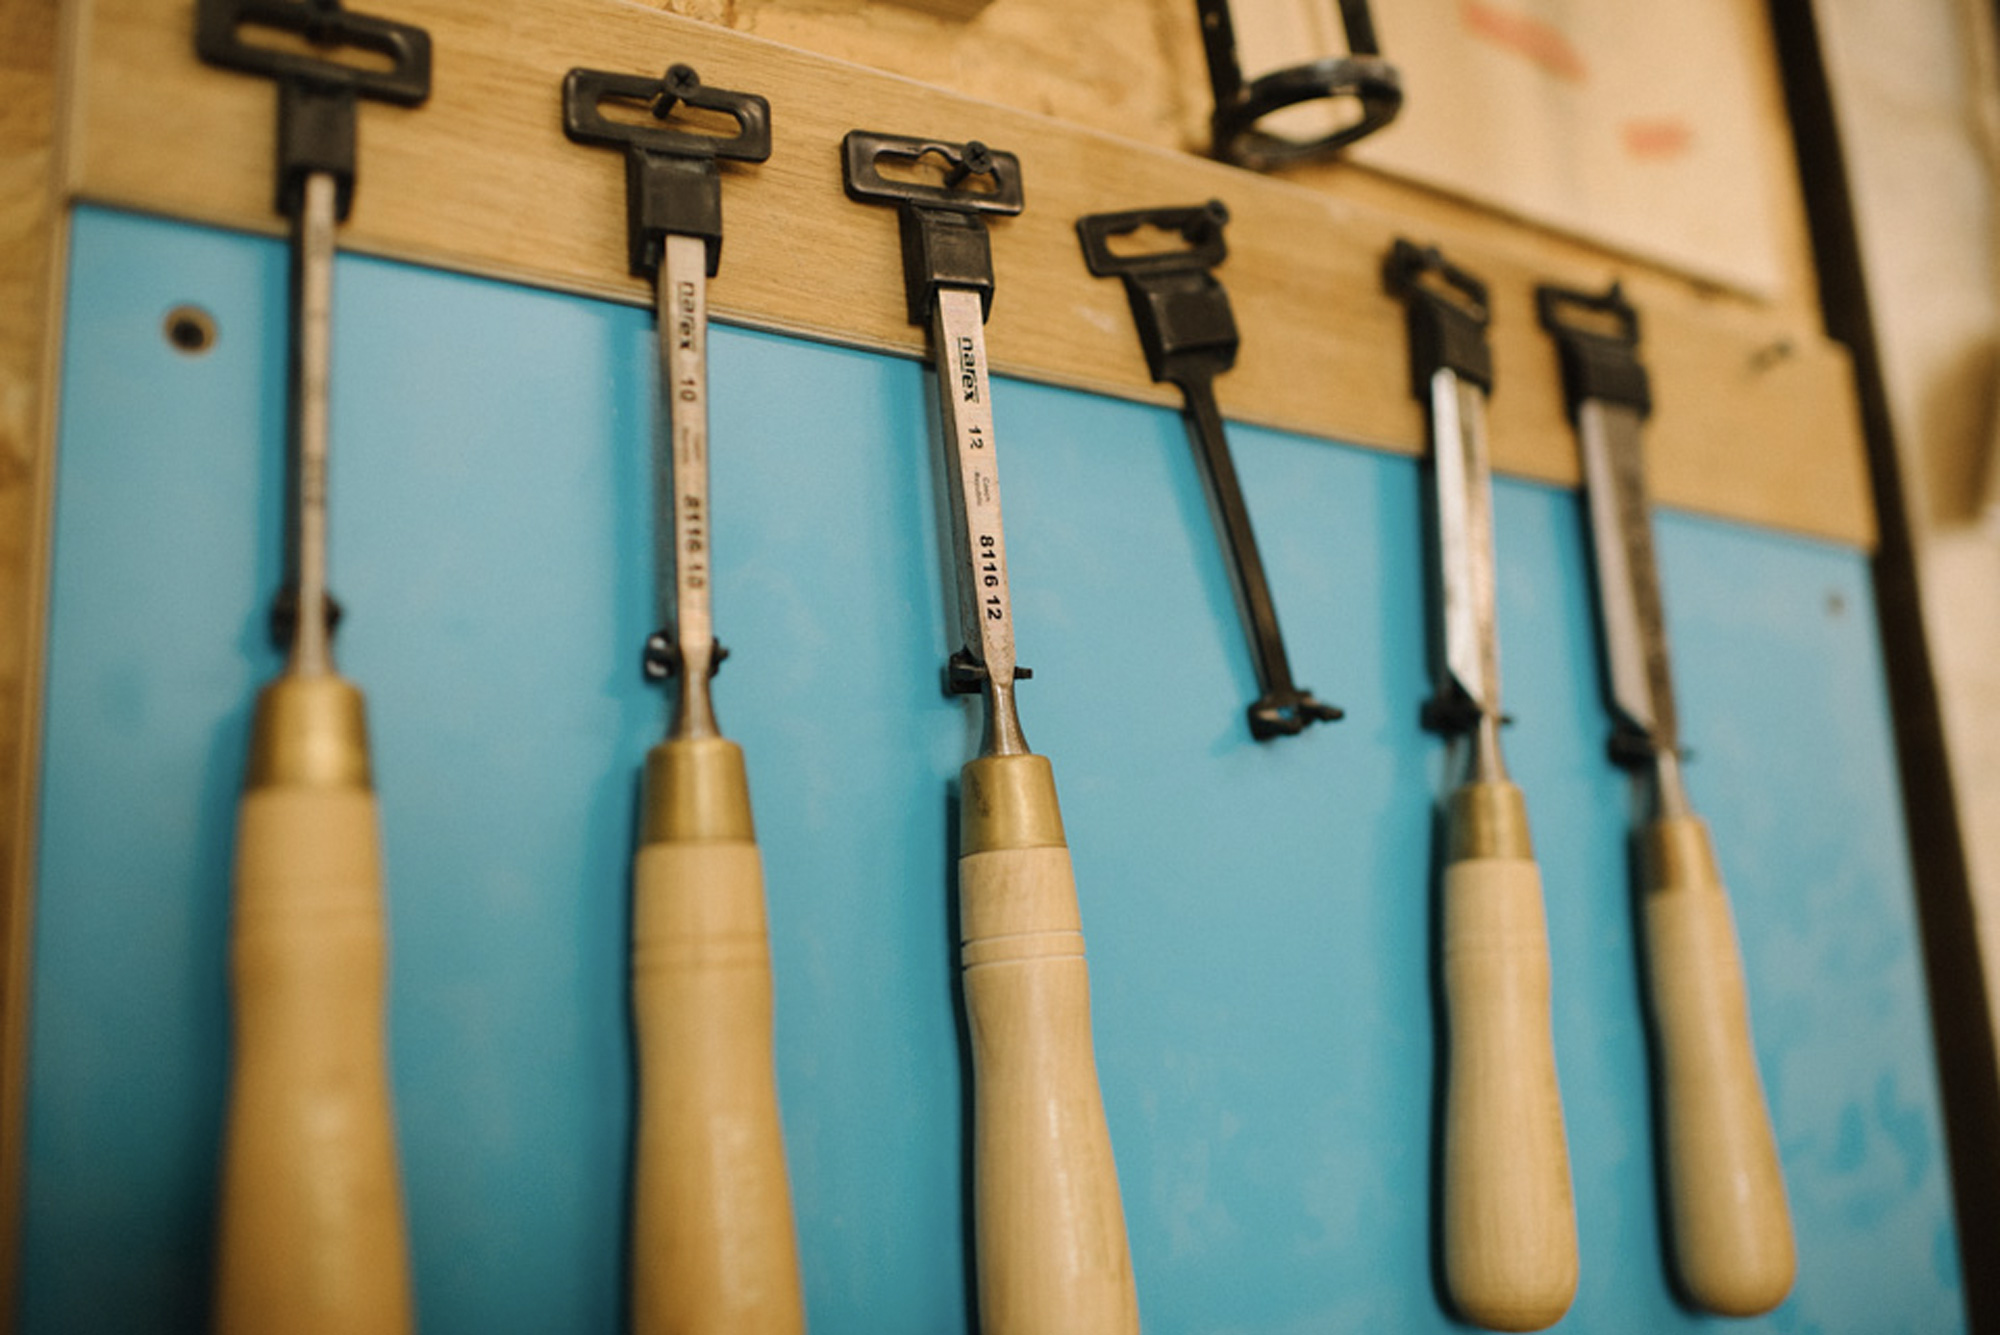 Woodworking tools on the wall